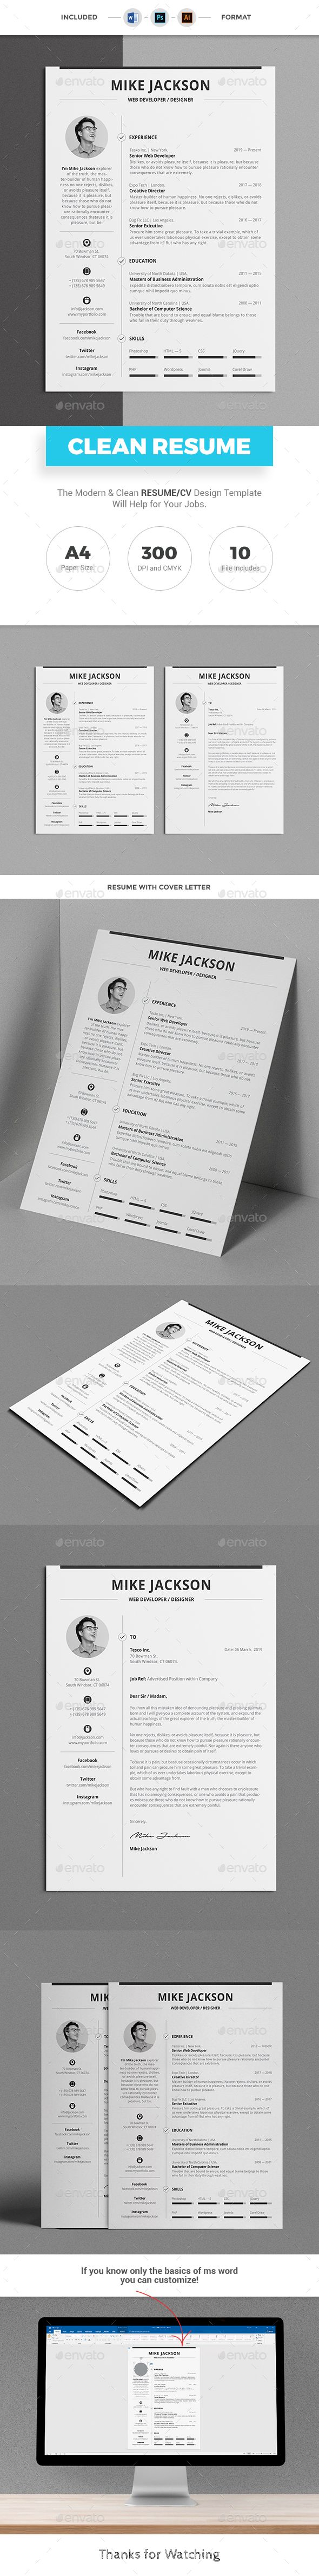 #Resume Pro (A4) Template with super clean and modern look. Resume Template page designs are easy to use and customize, so you can quickly tailor-make your job resume for any opportunity and help you to get your job. This Infographic Resume CV Template is made in Adobe Photoshop, Illustrator format and very popular word processor, MS Word aka Microsoft Word.